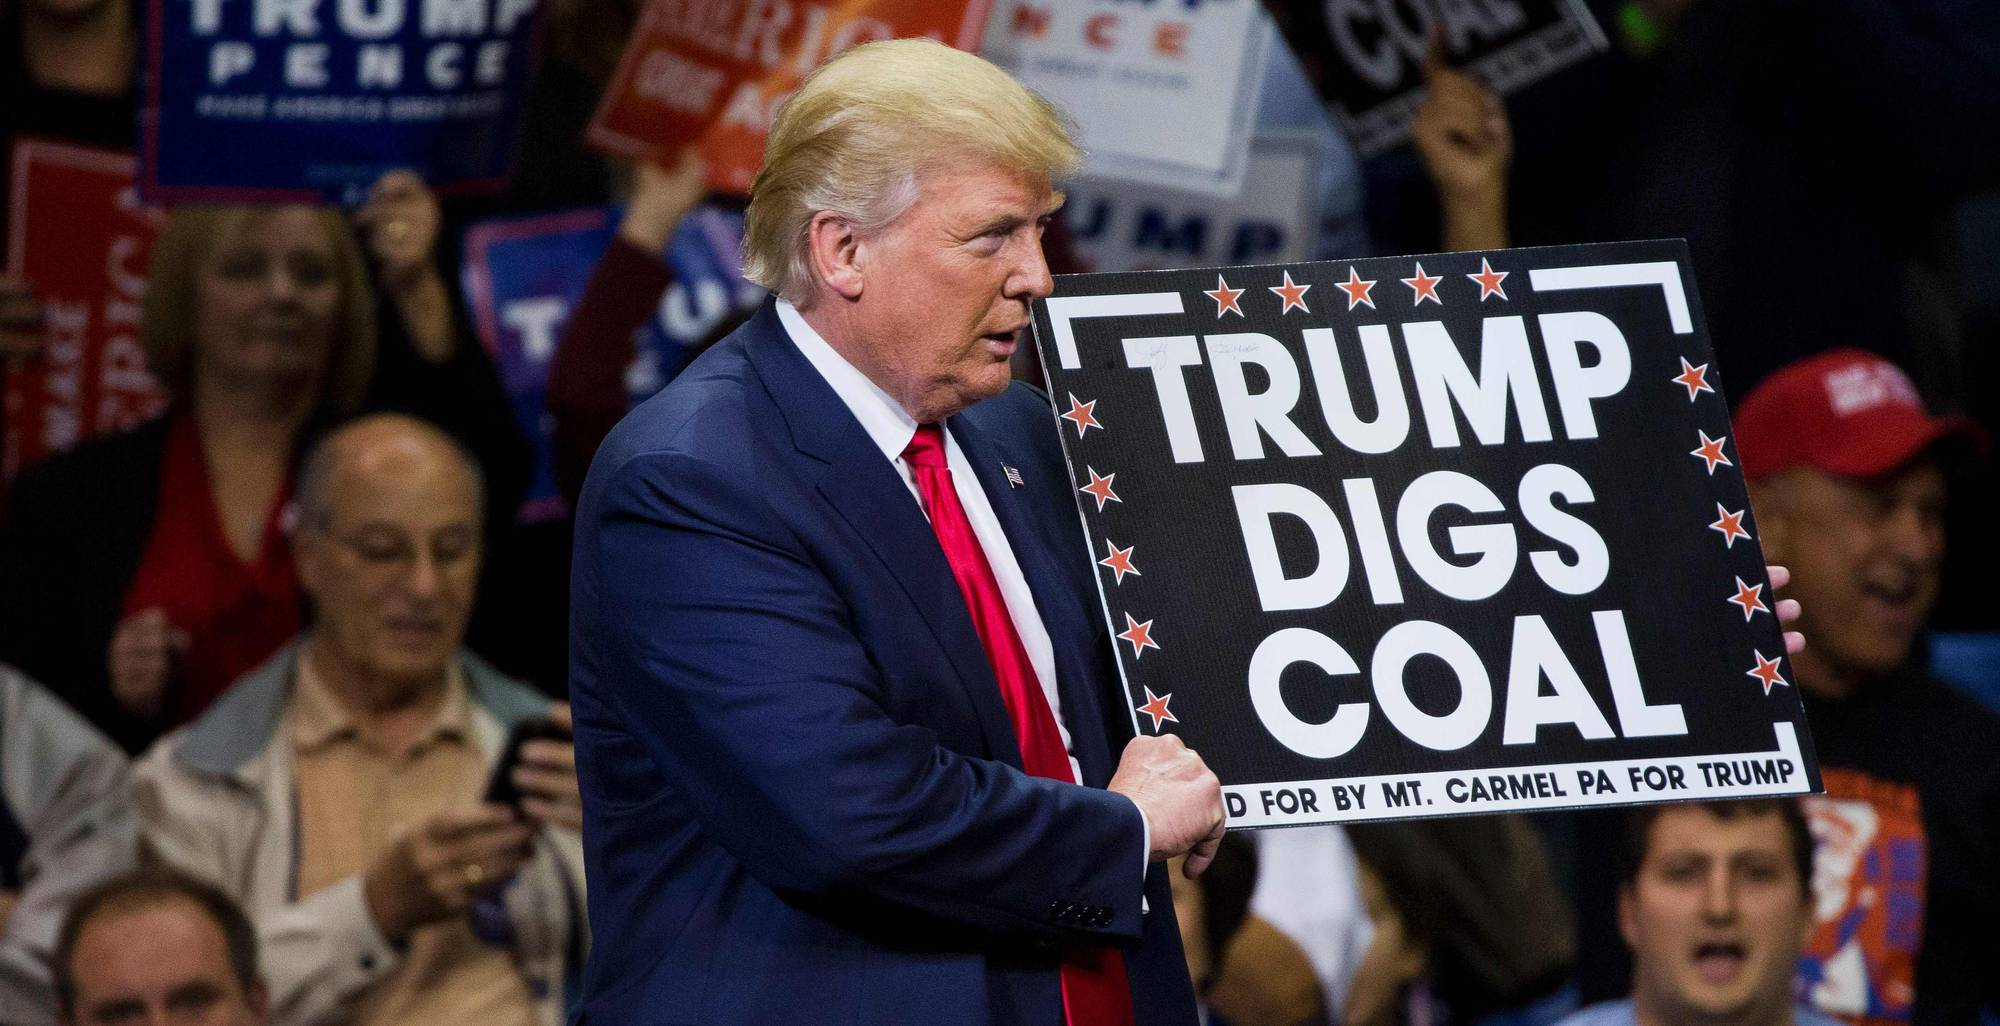 Trumping Obama's legacy on US coal industry